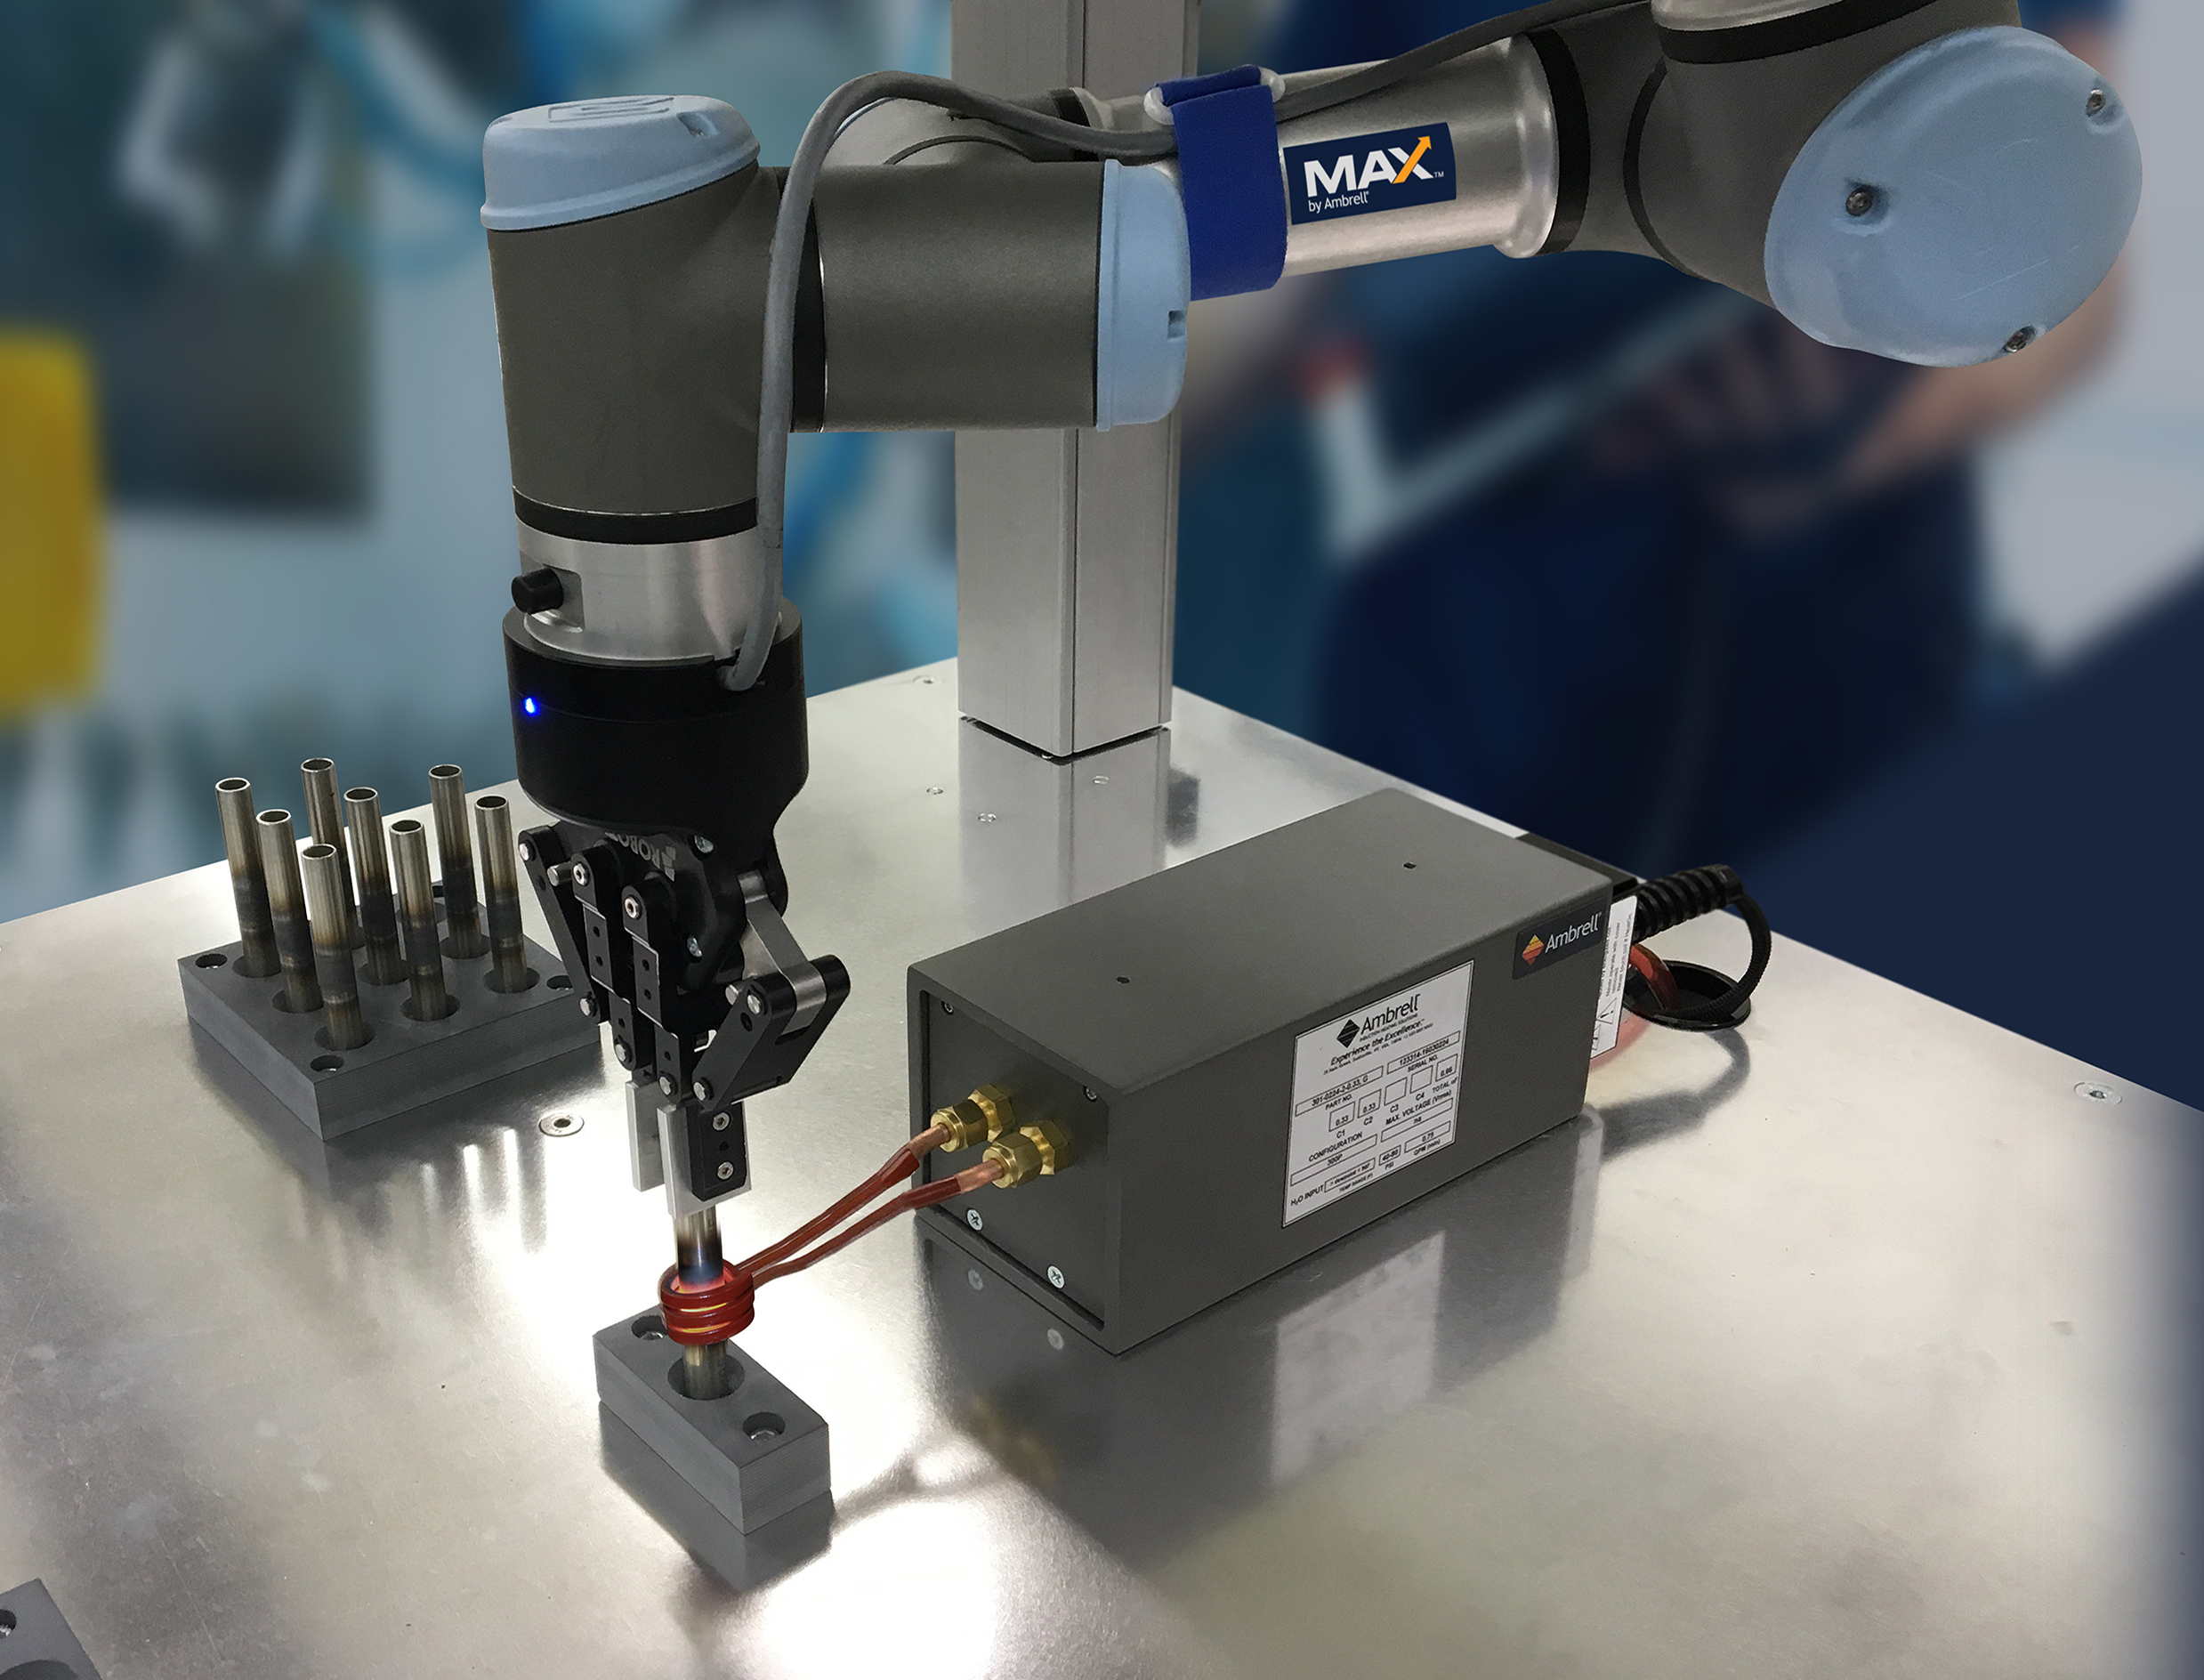 Universal Robots shows ROI at ATX East in New York City